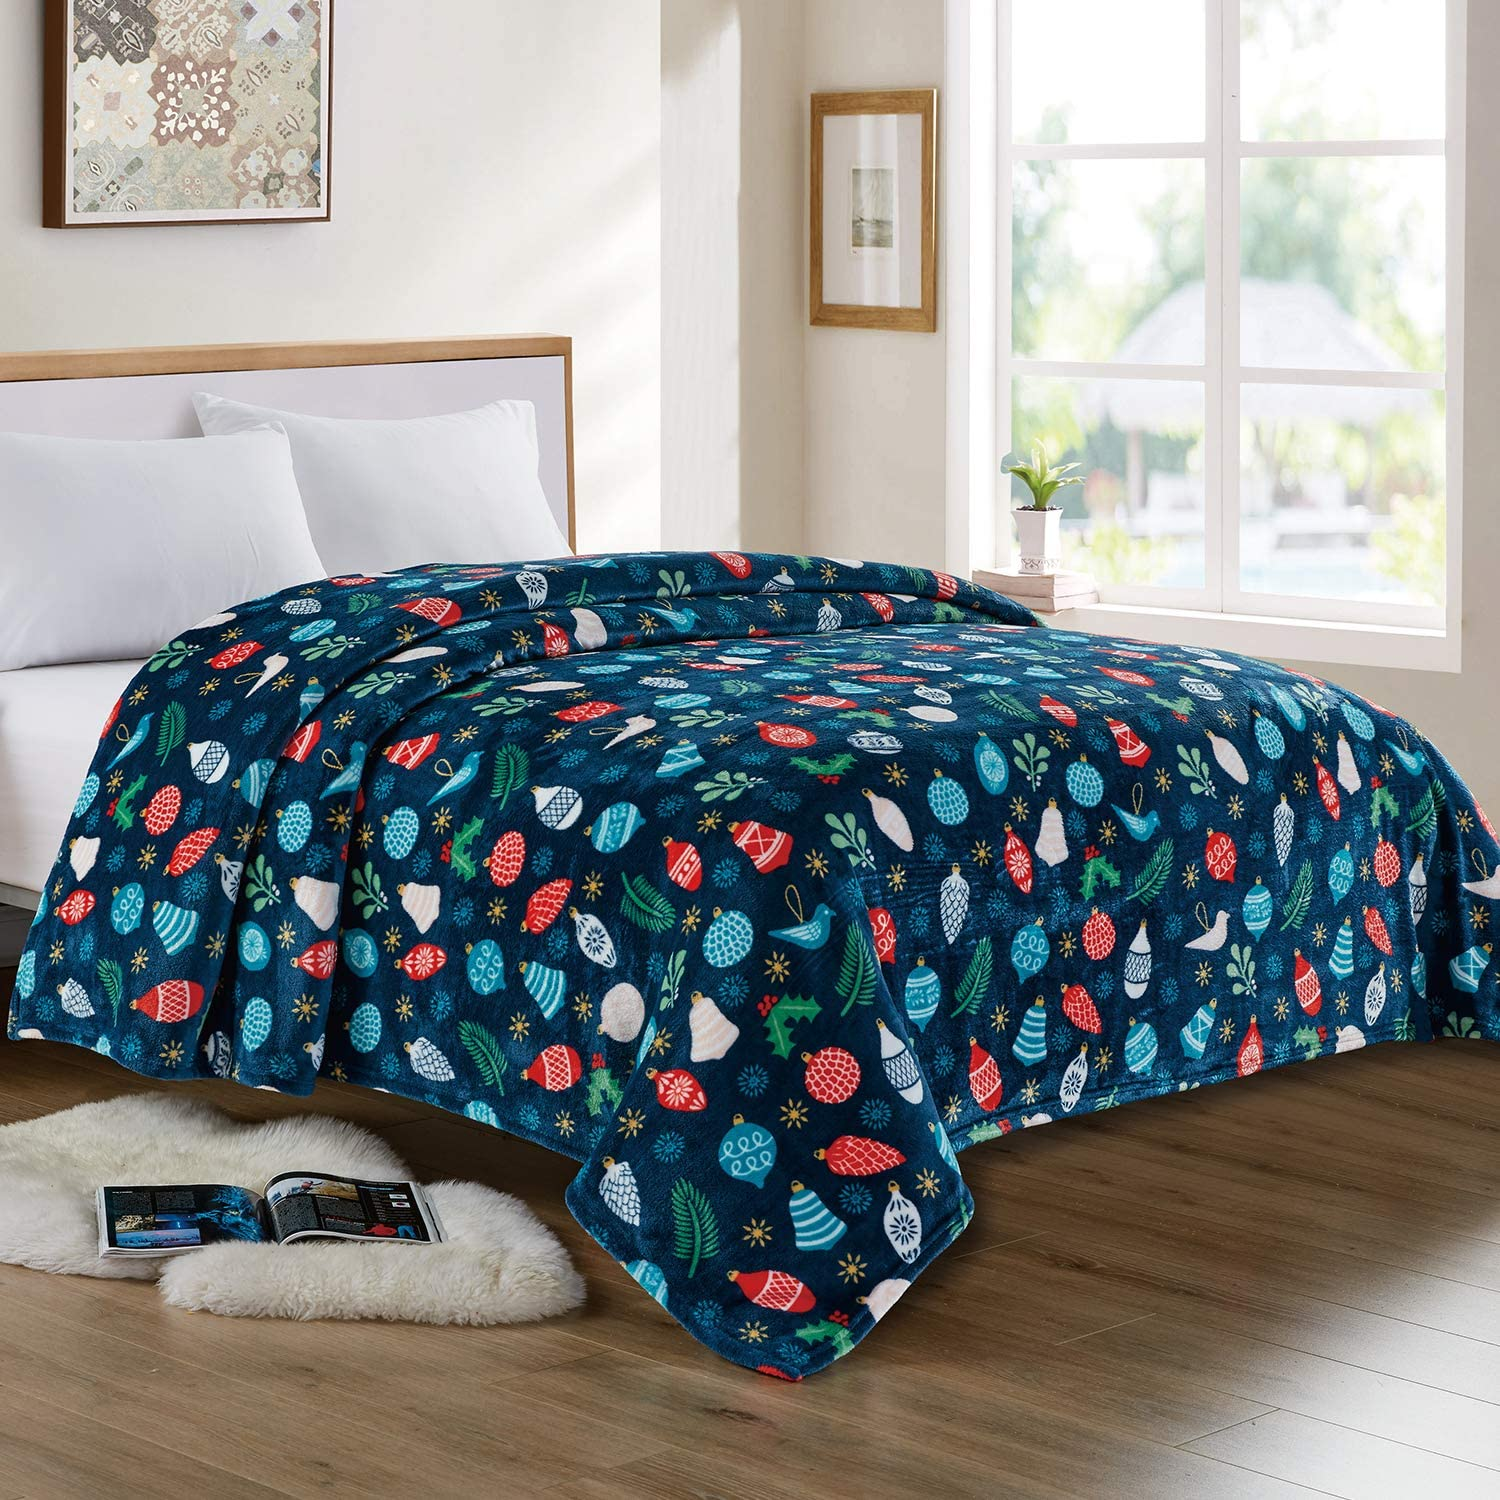 Flannel Fleece Blanket Solid Max 88% Max 65% OFF OFF Velvet Plush Bed Couch for So Throw